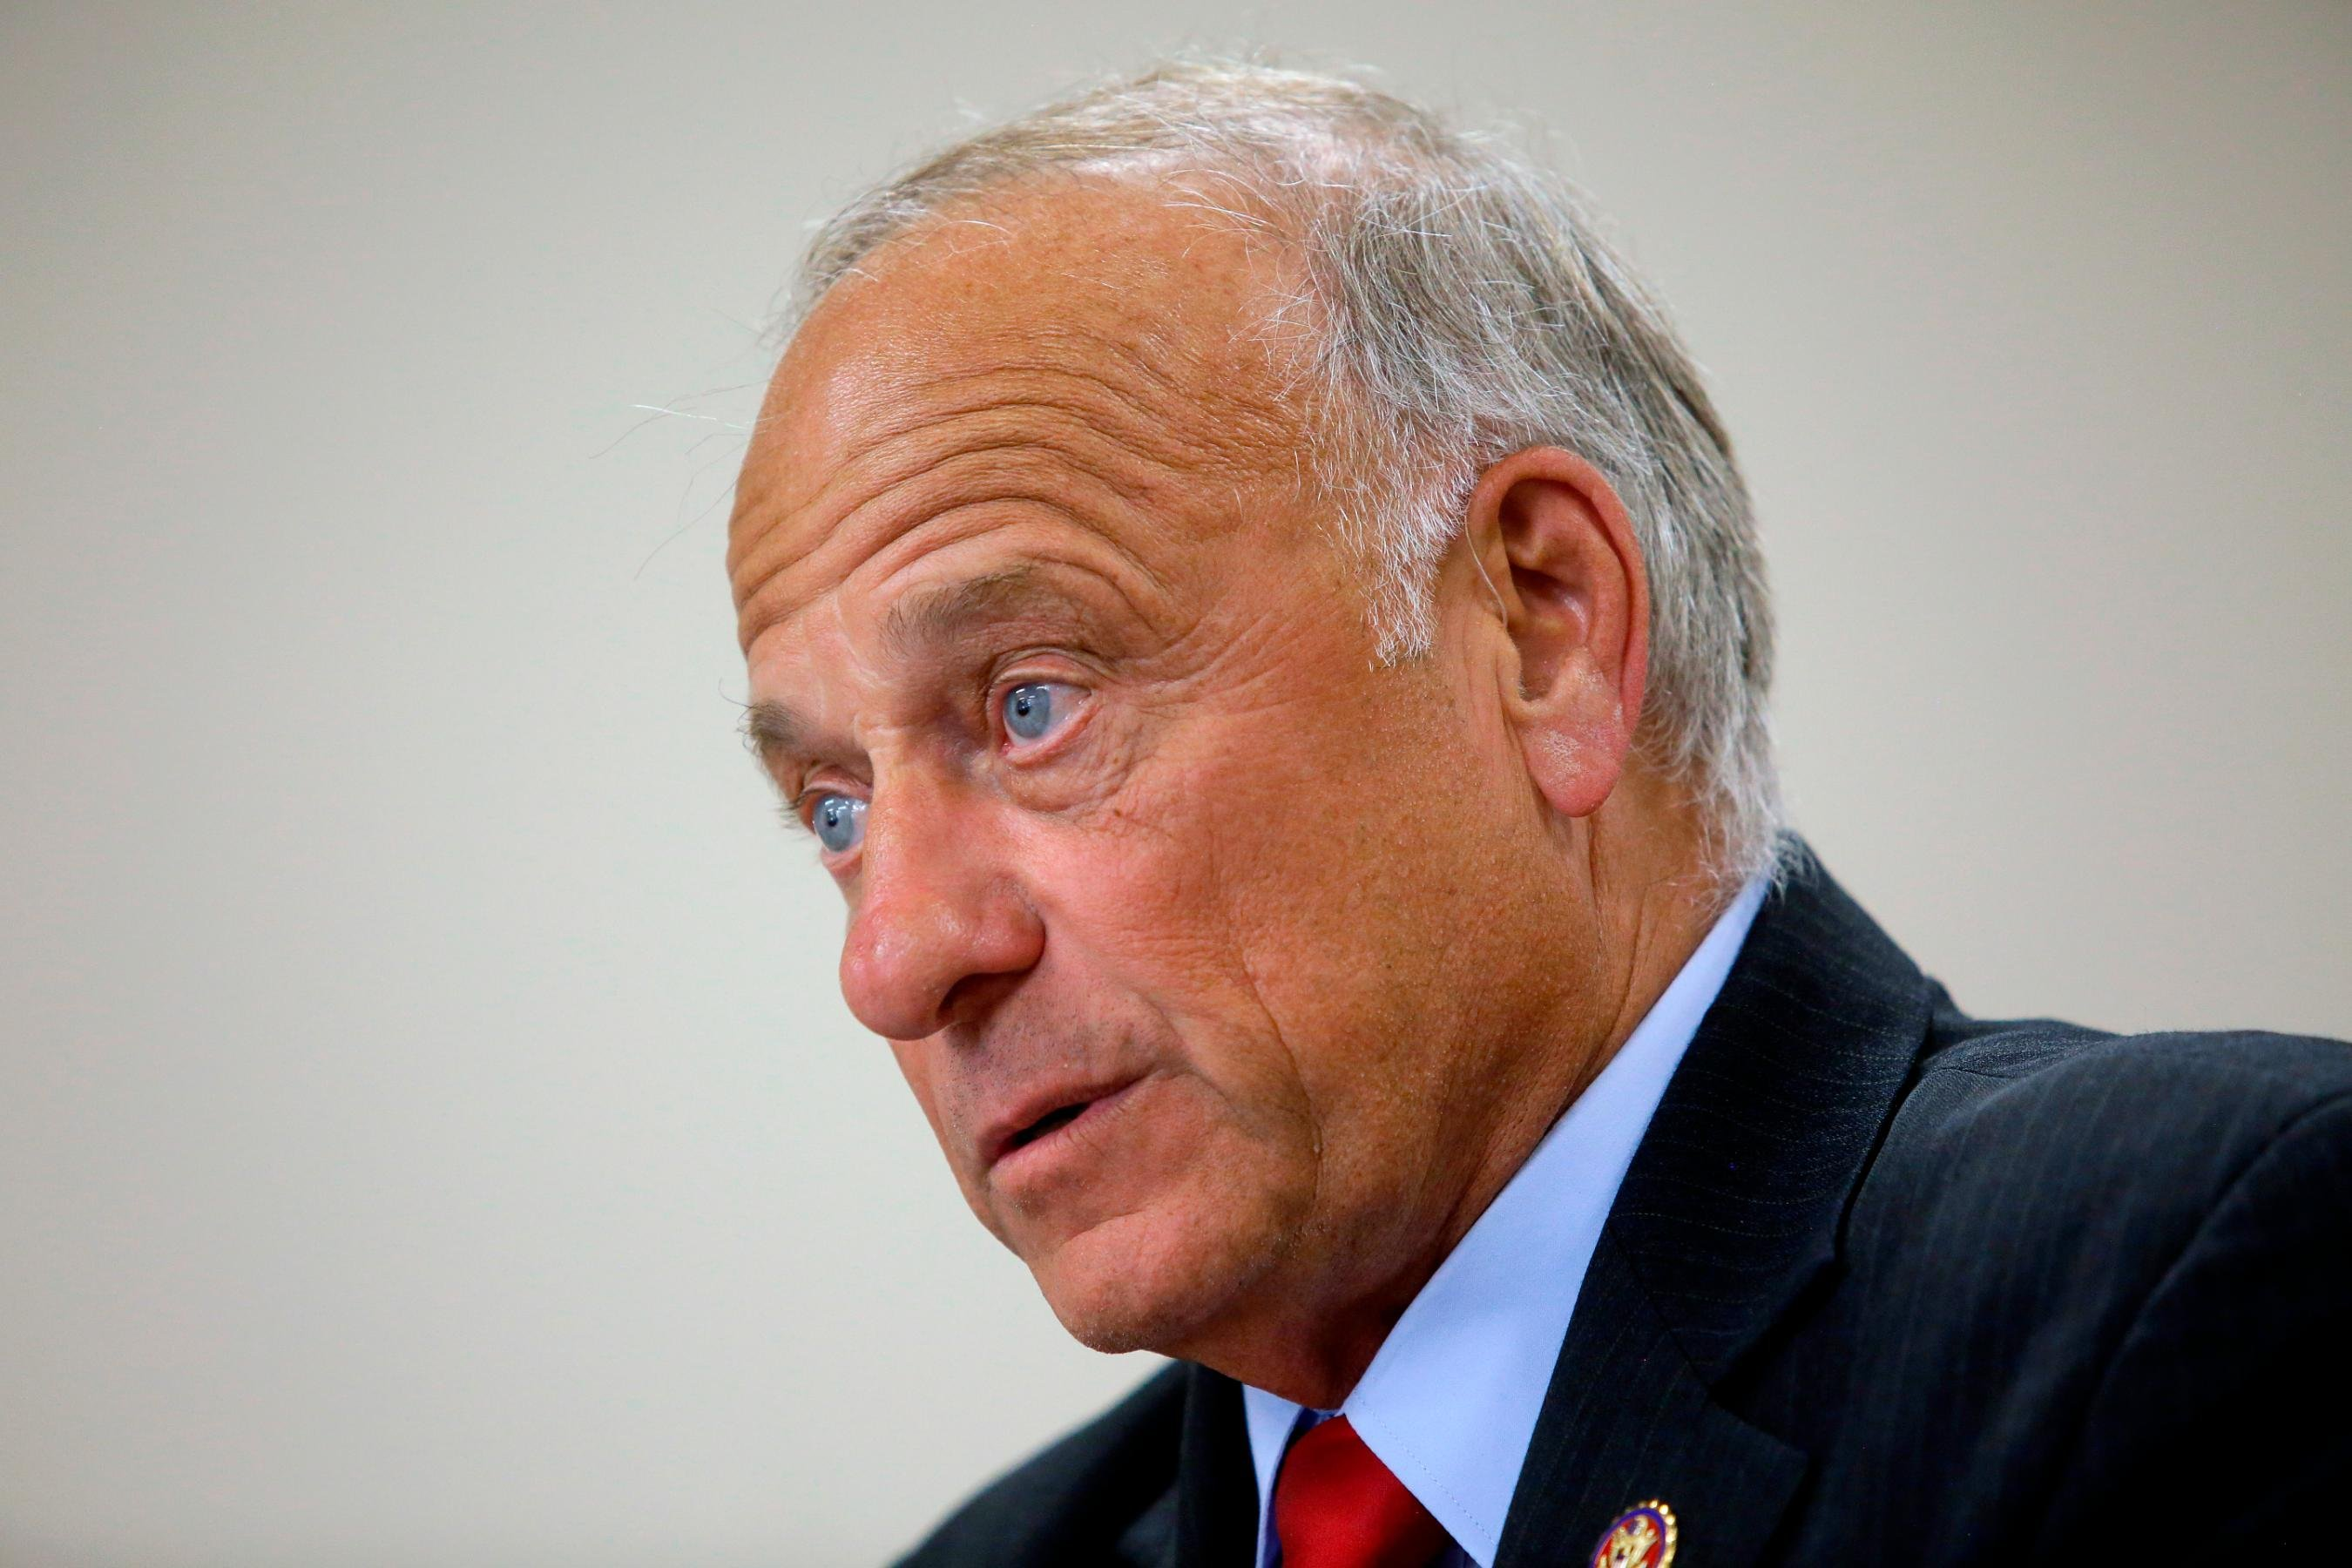 Steve King on losing his committee assignments: 'It's Kevin McCarthy's mistake, it's not mine'